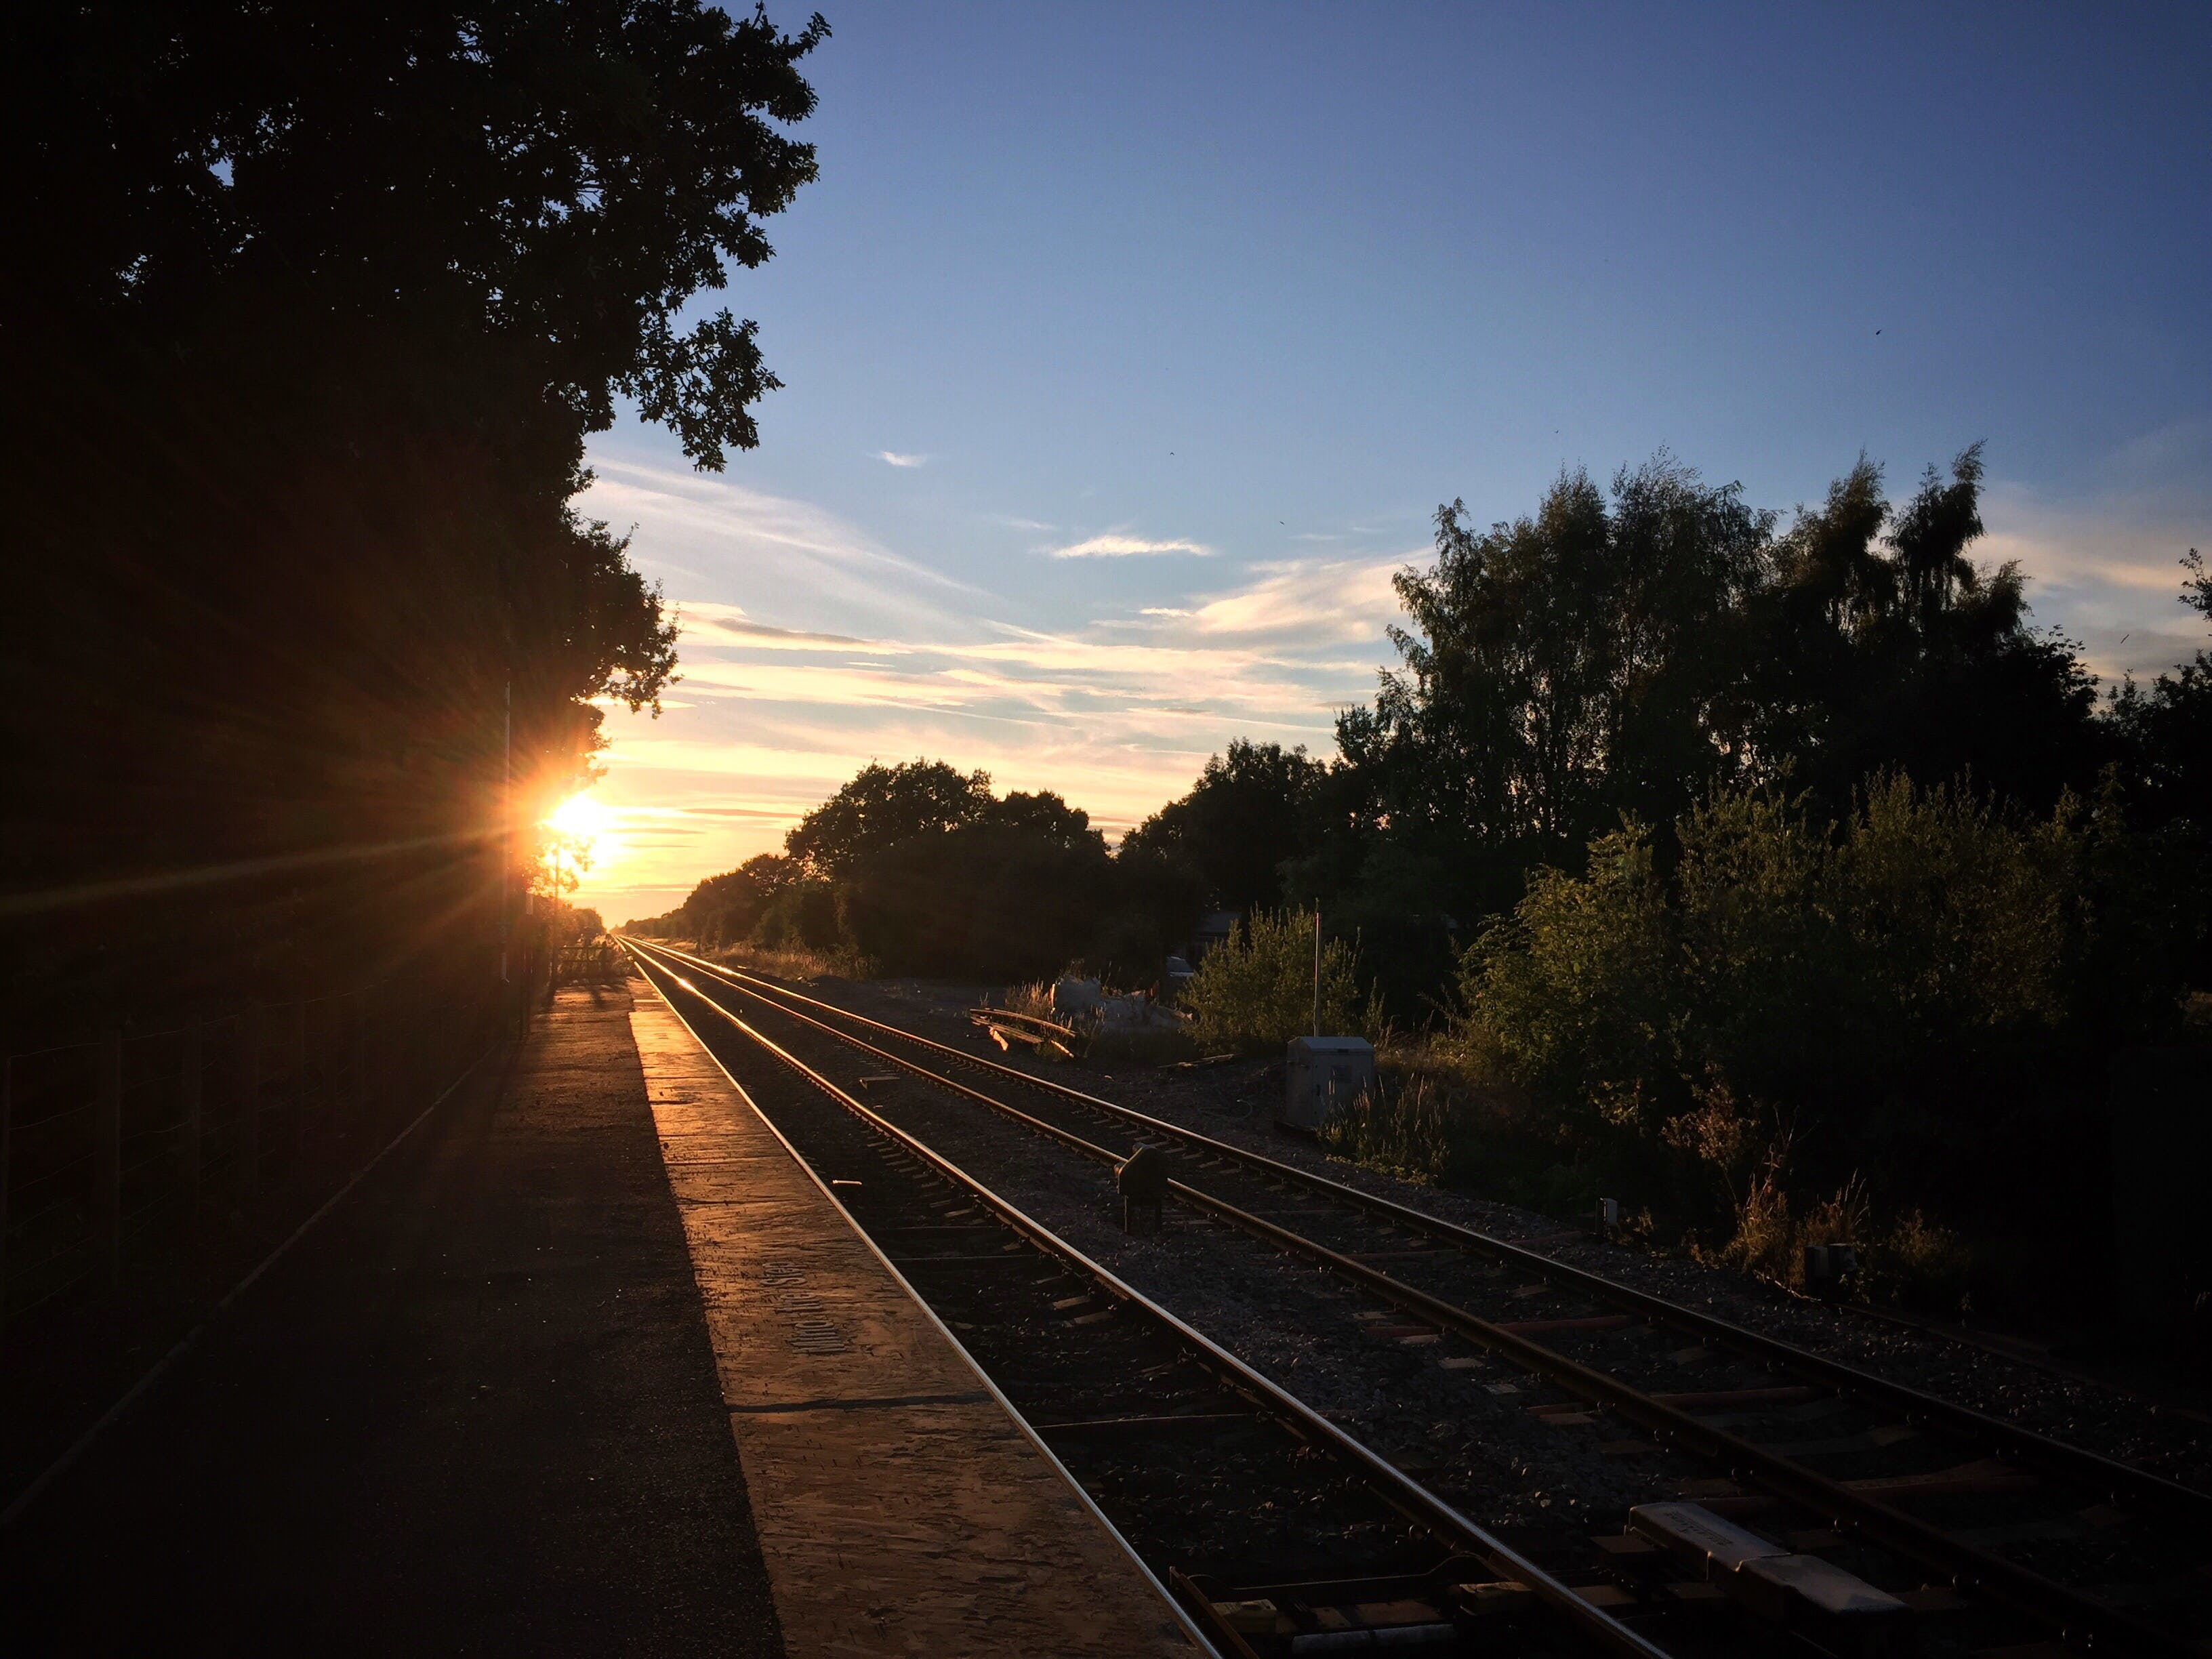 Free stock photo of sunset, train tracks